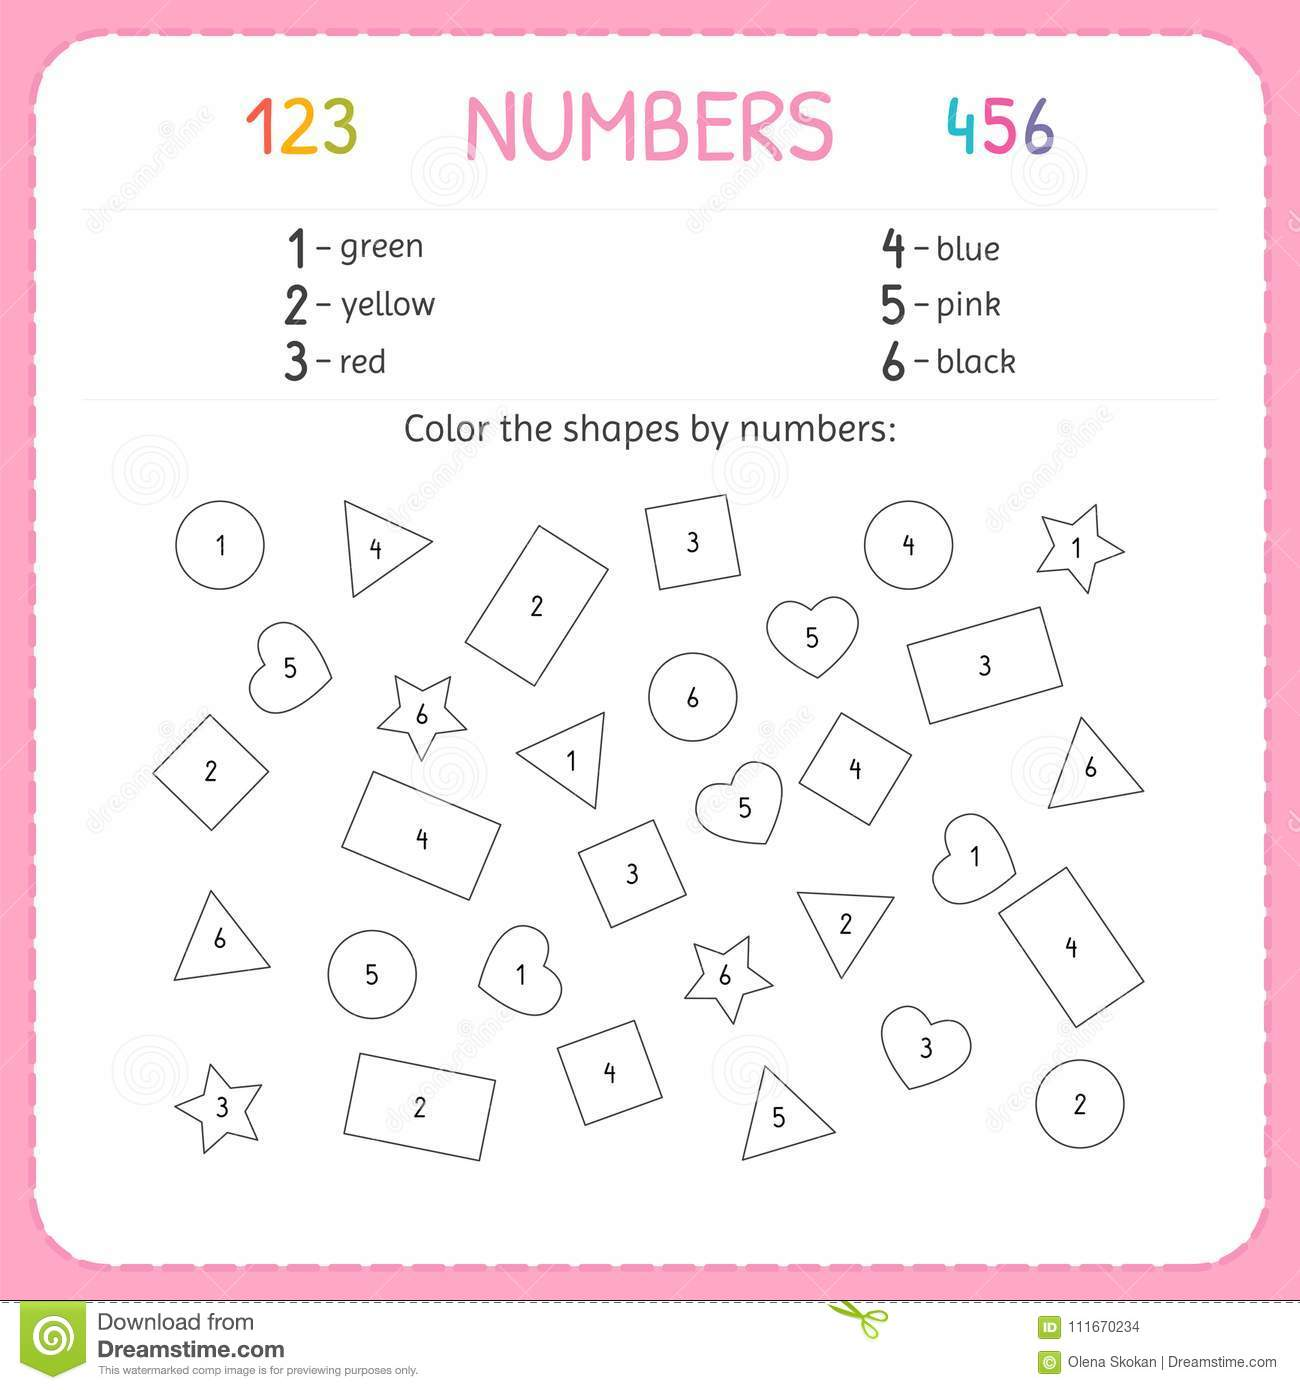 Color The Shapes By Numbers Worksheet For Kindergarten And Preschool Training To Write And